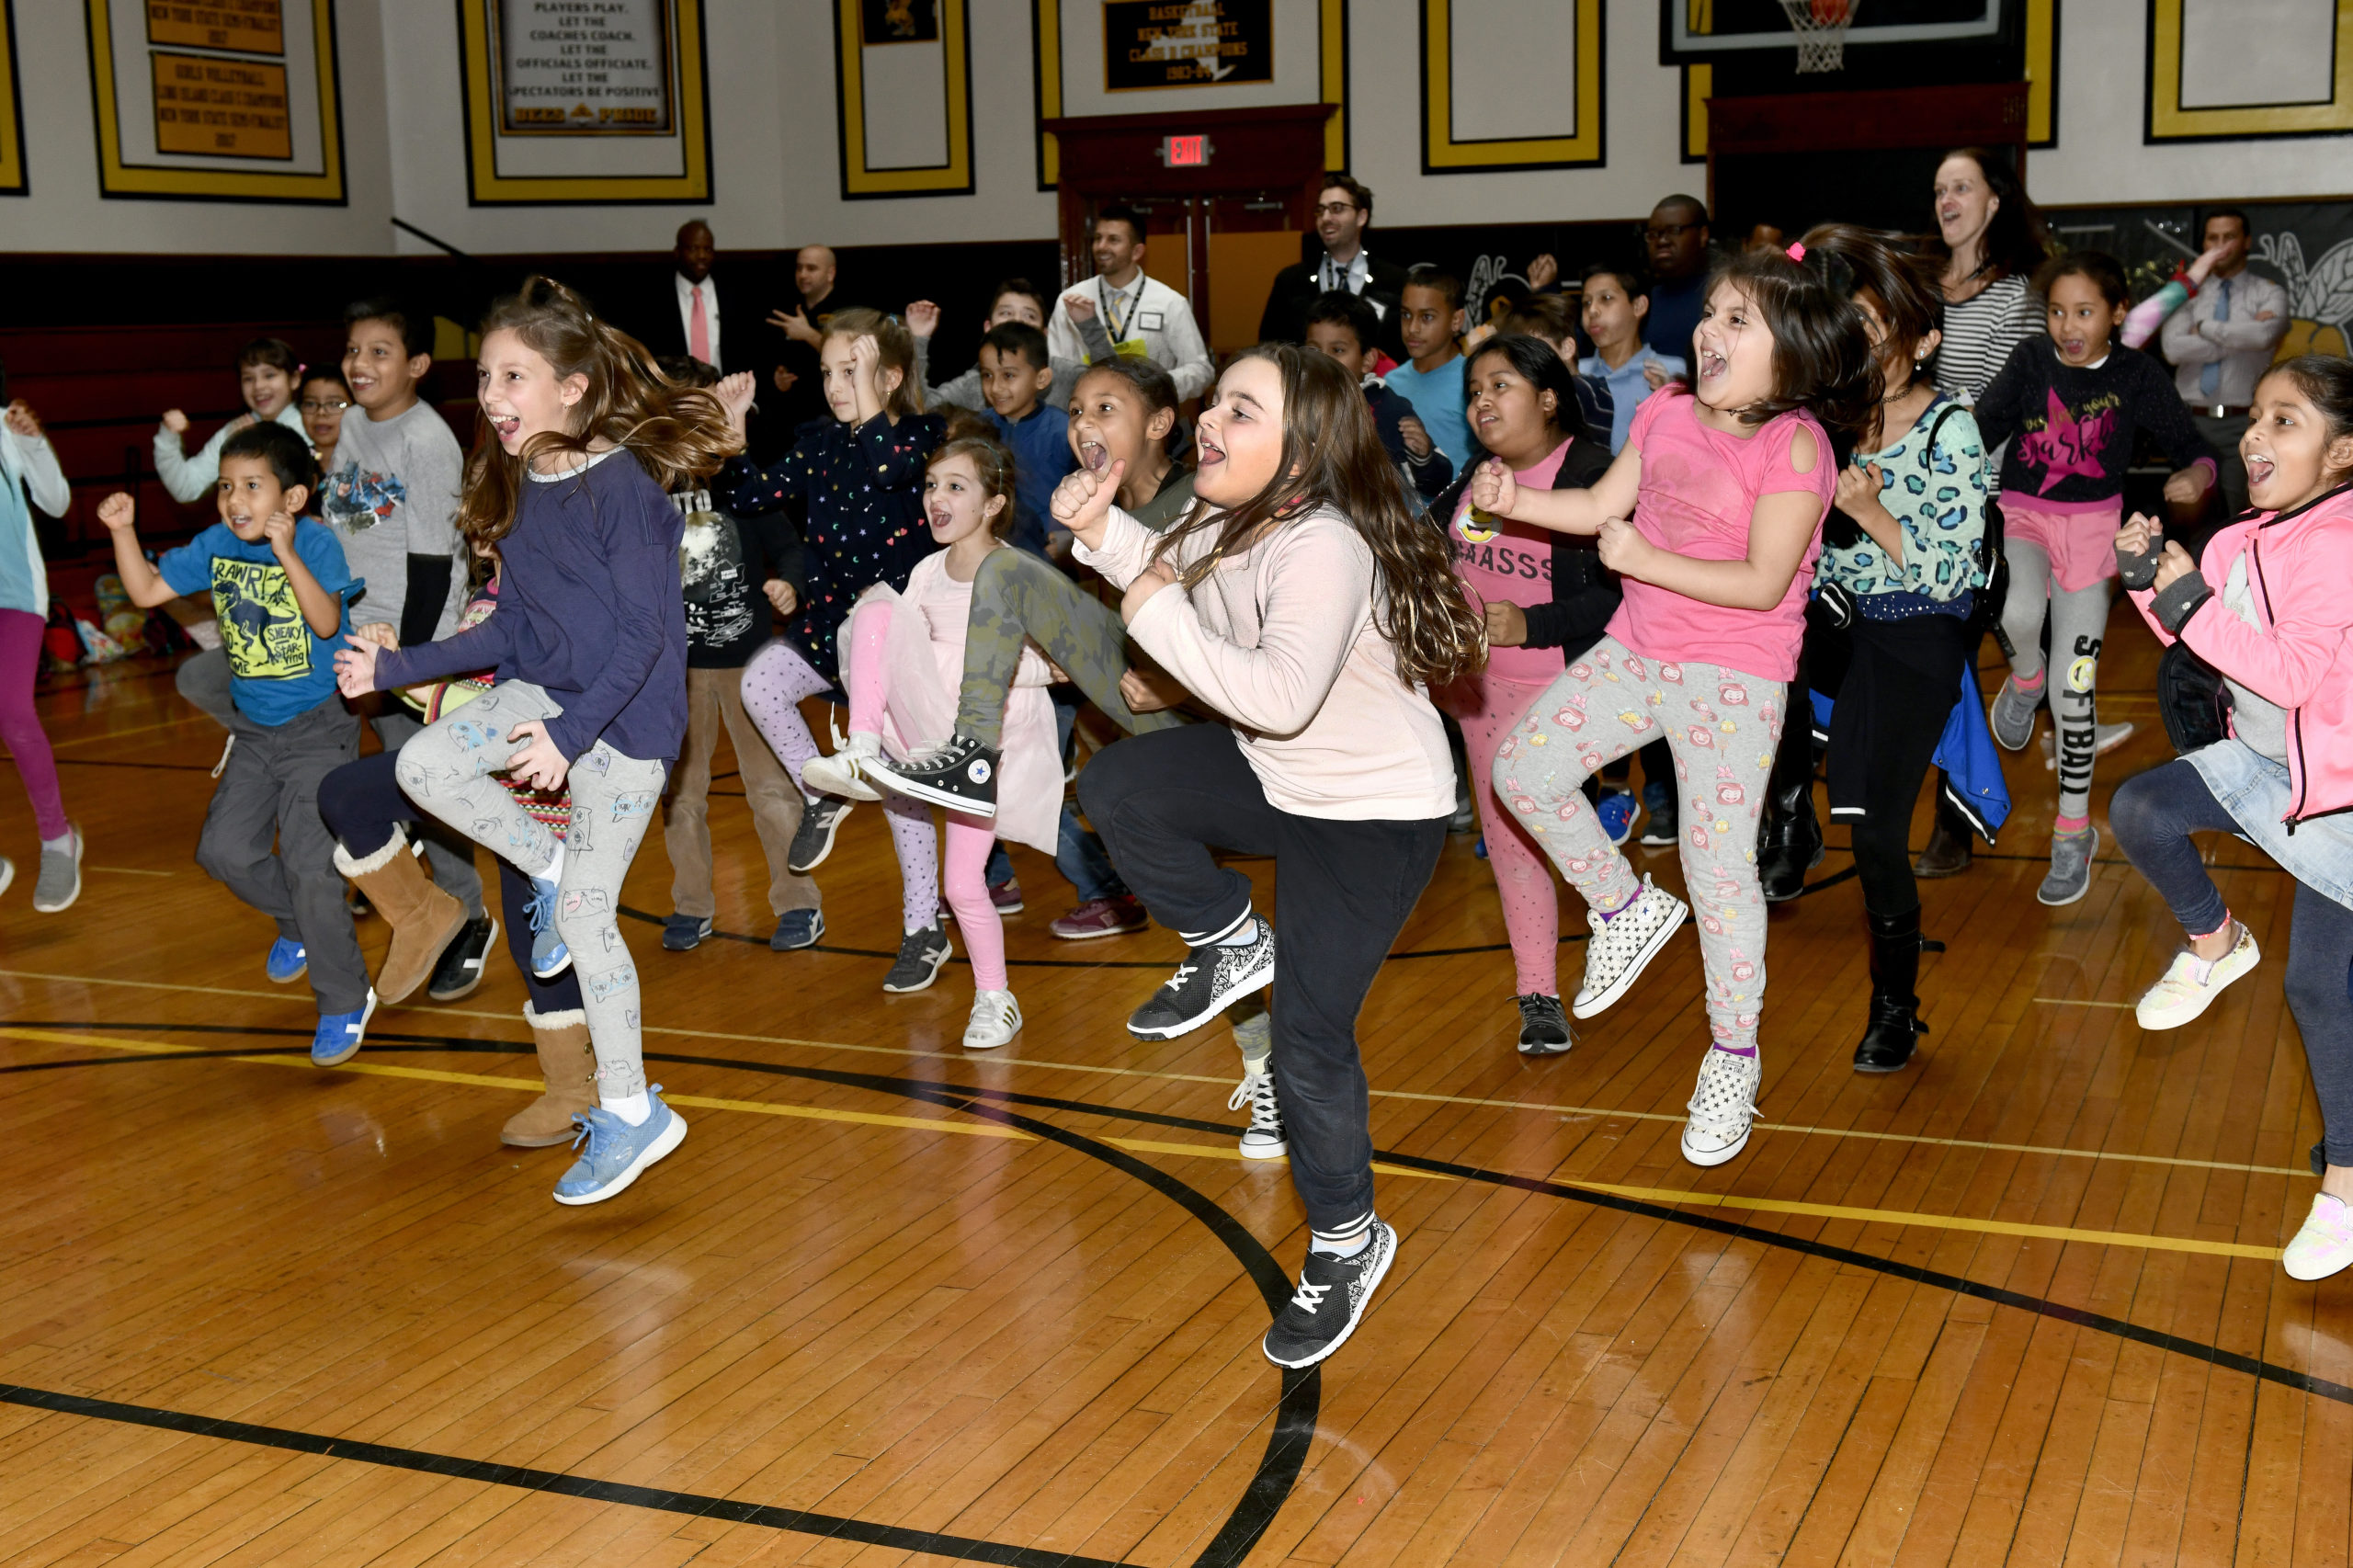 Dance Till You Drop! January 24 -- The Bridgehampton School Elementary Student Council hosted a dance marathon on Friday in the school gym. The event was organized by fifth-grader and Student Council President, Sascha Gomberg.